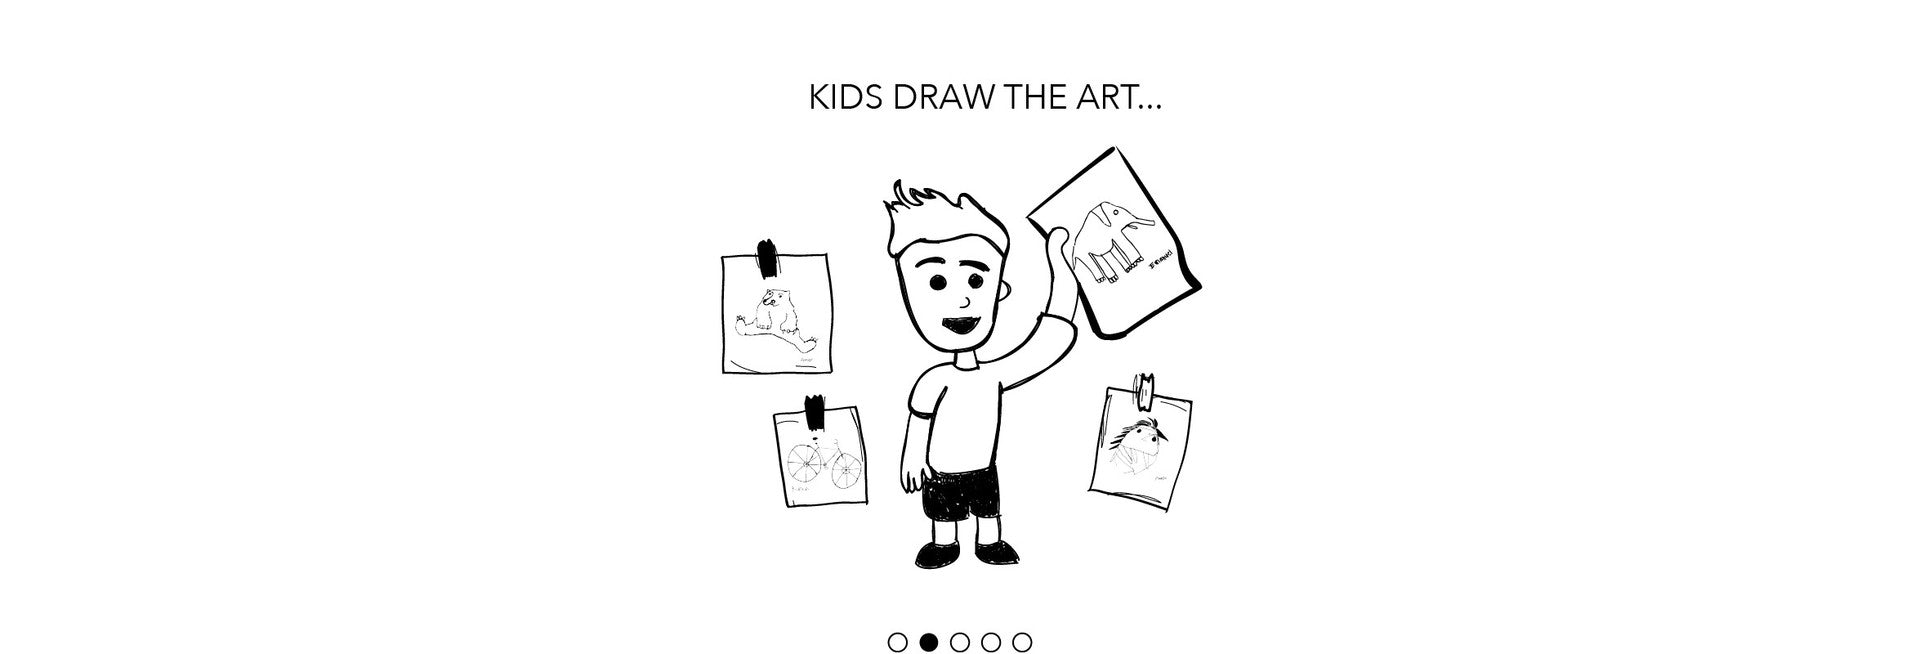 kids draw the art...